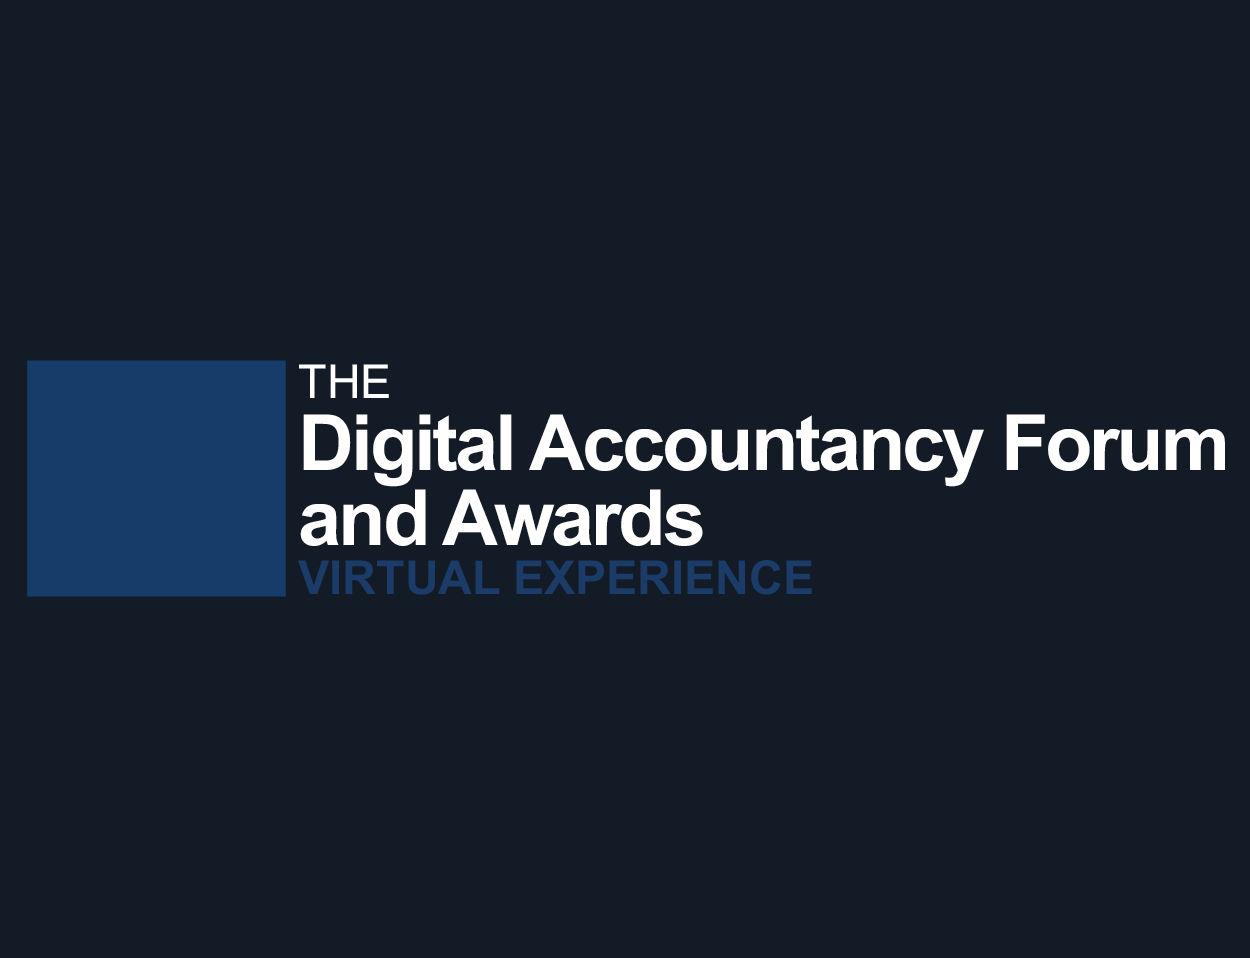 The Digital Accountancy Forum and Awards – A Virtual Experience